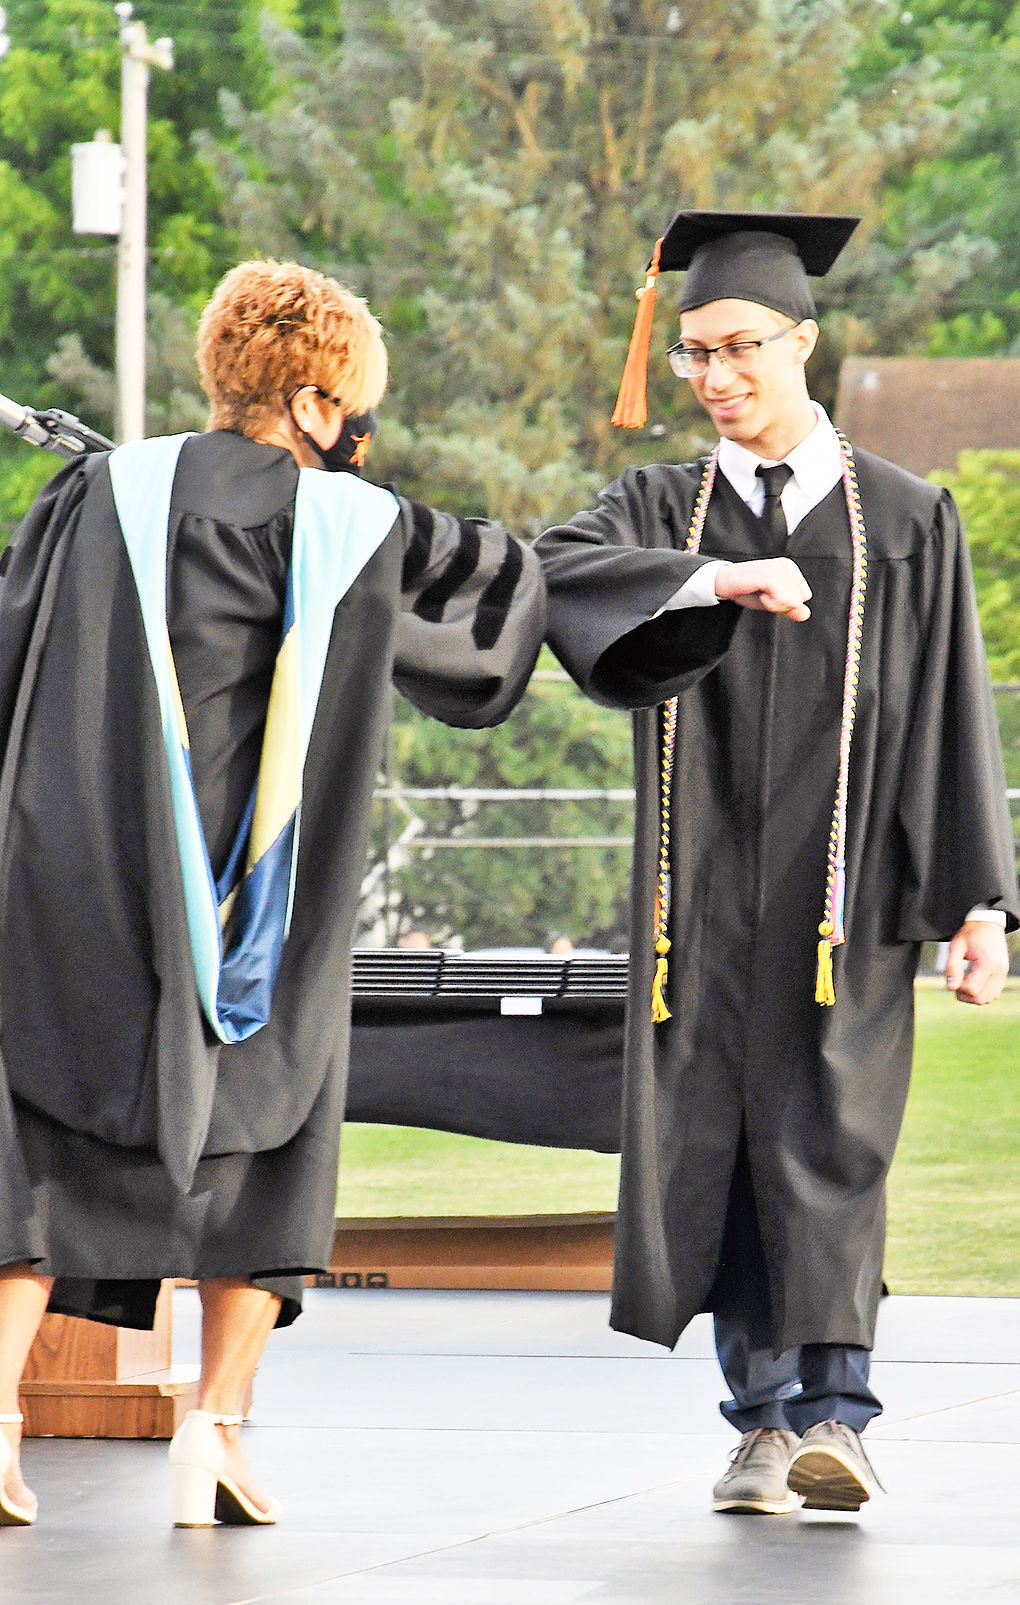 Greater Latrobe grads experience socially distanced ceremony